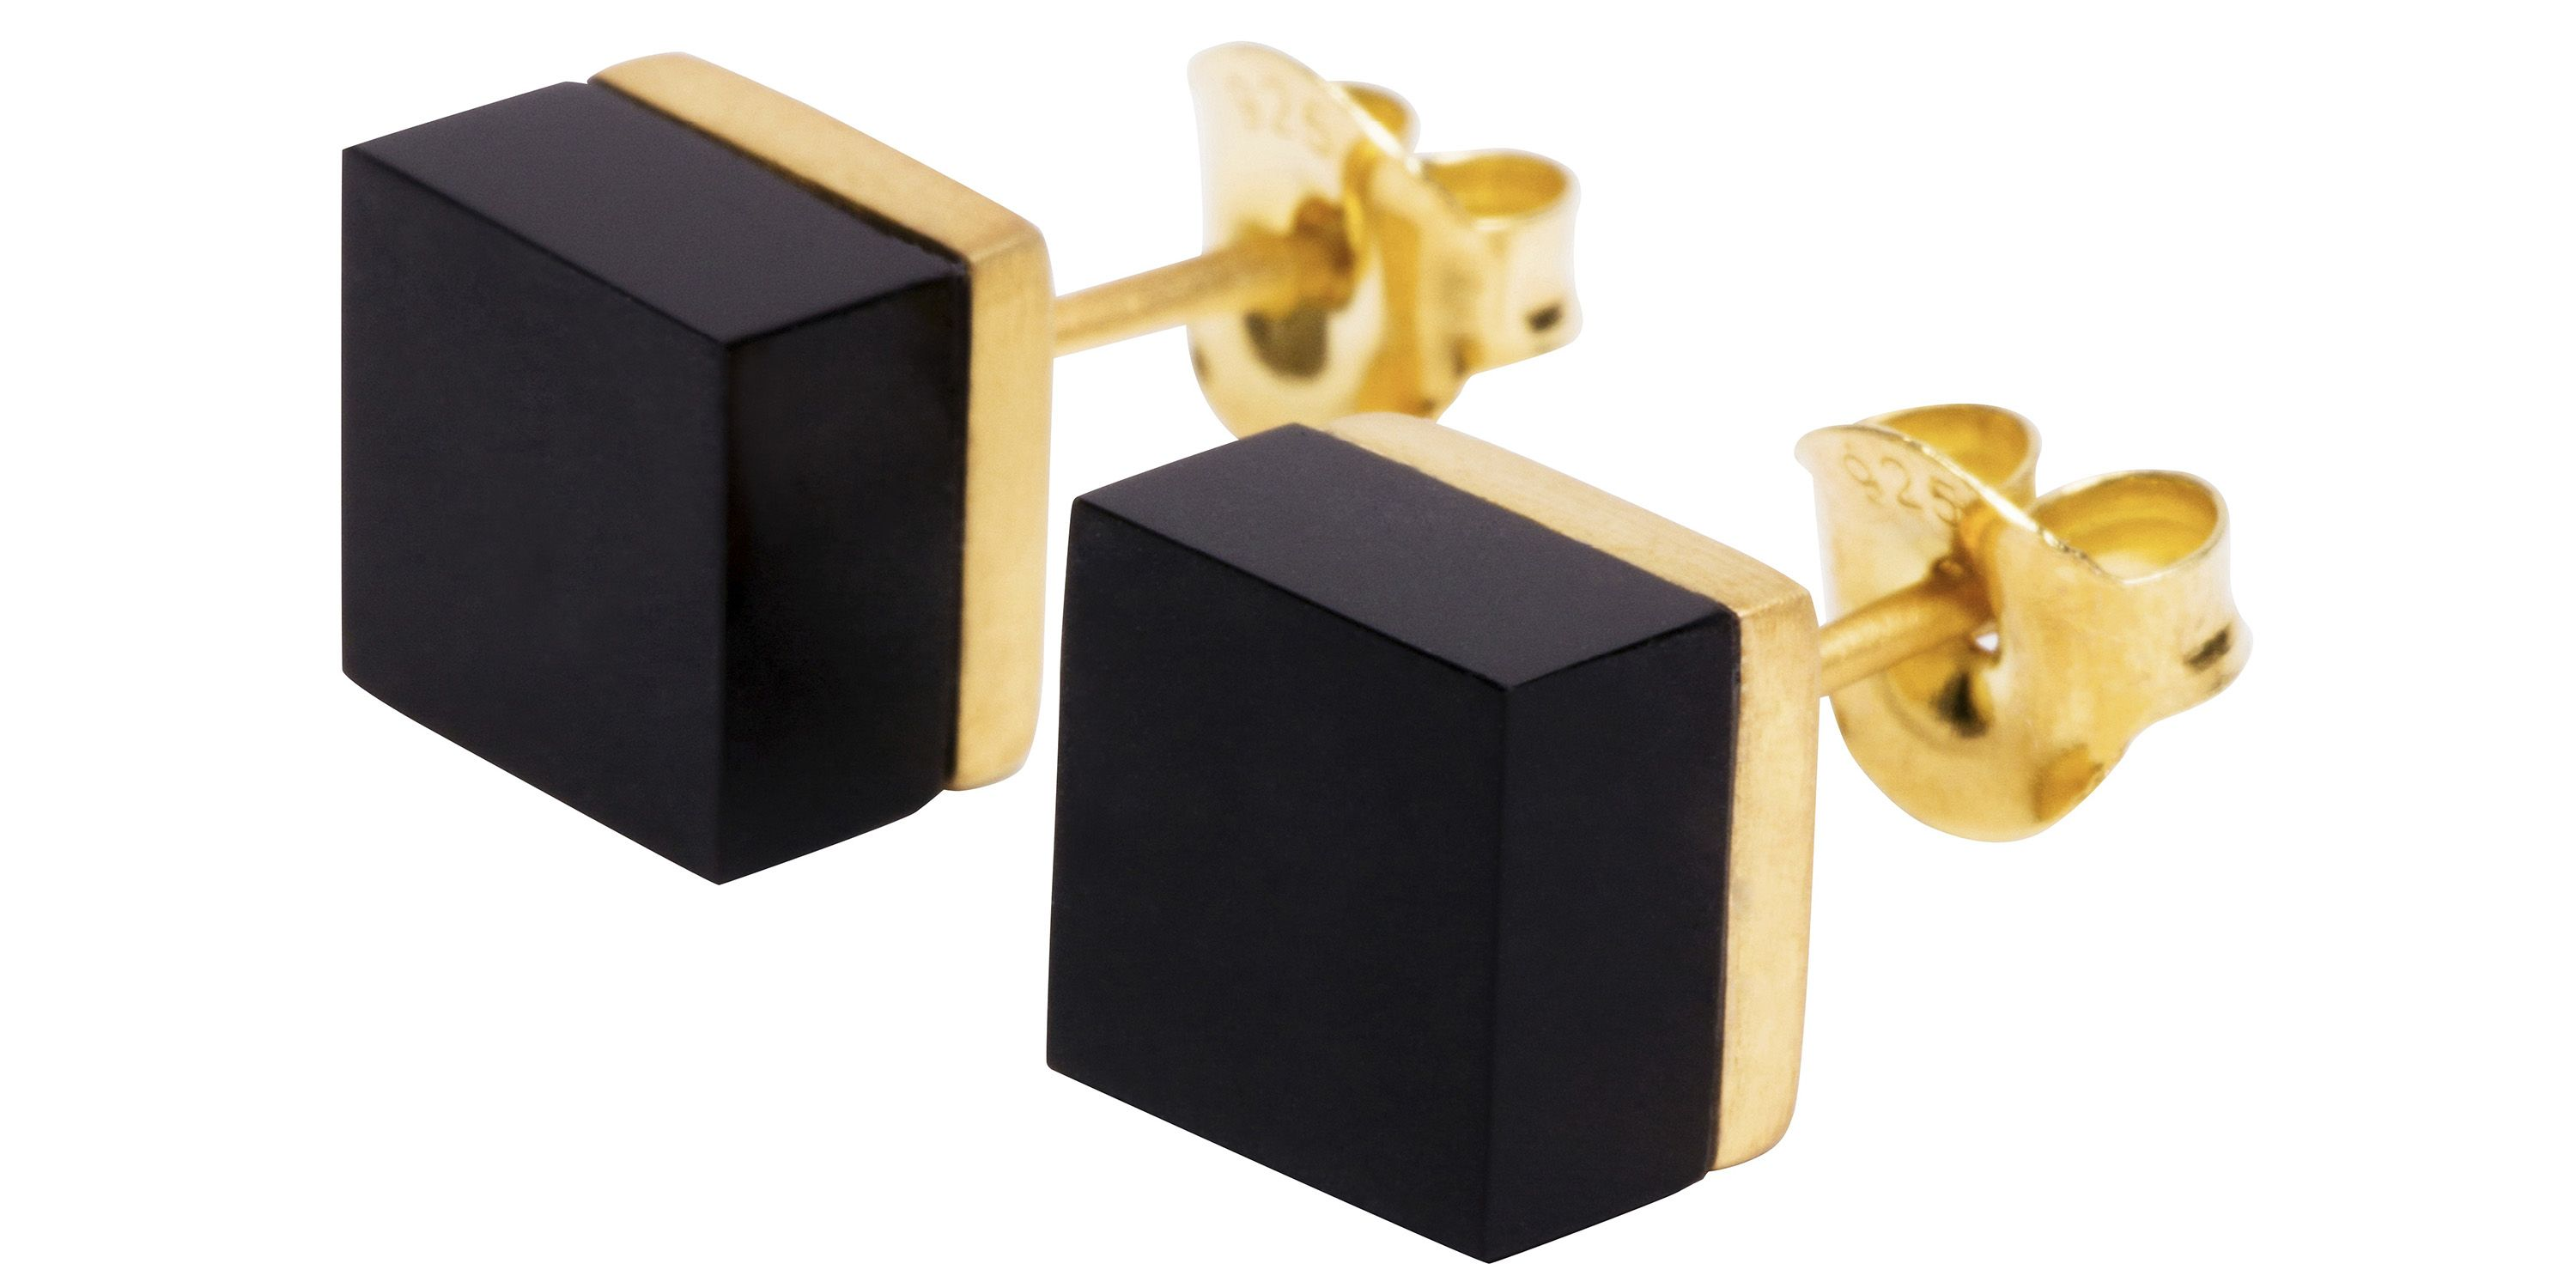 "<p><strong>Ming Yu Wang </strong>earrings, $345, <a href=""https://www.theline.com/shop/fashion/jewelry"" target=""_blank"">theline.com</a>. </p>"